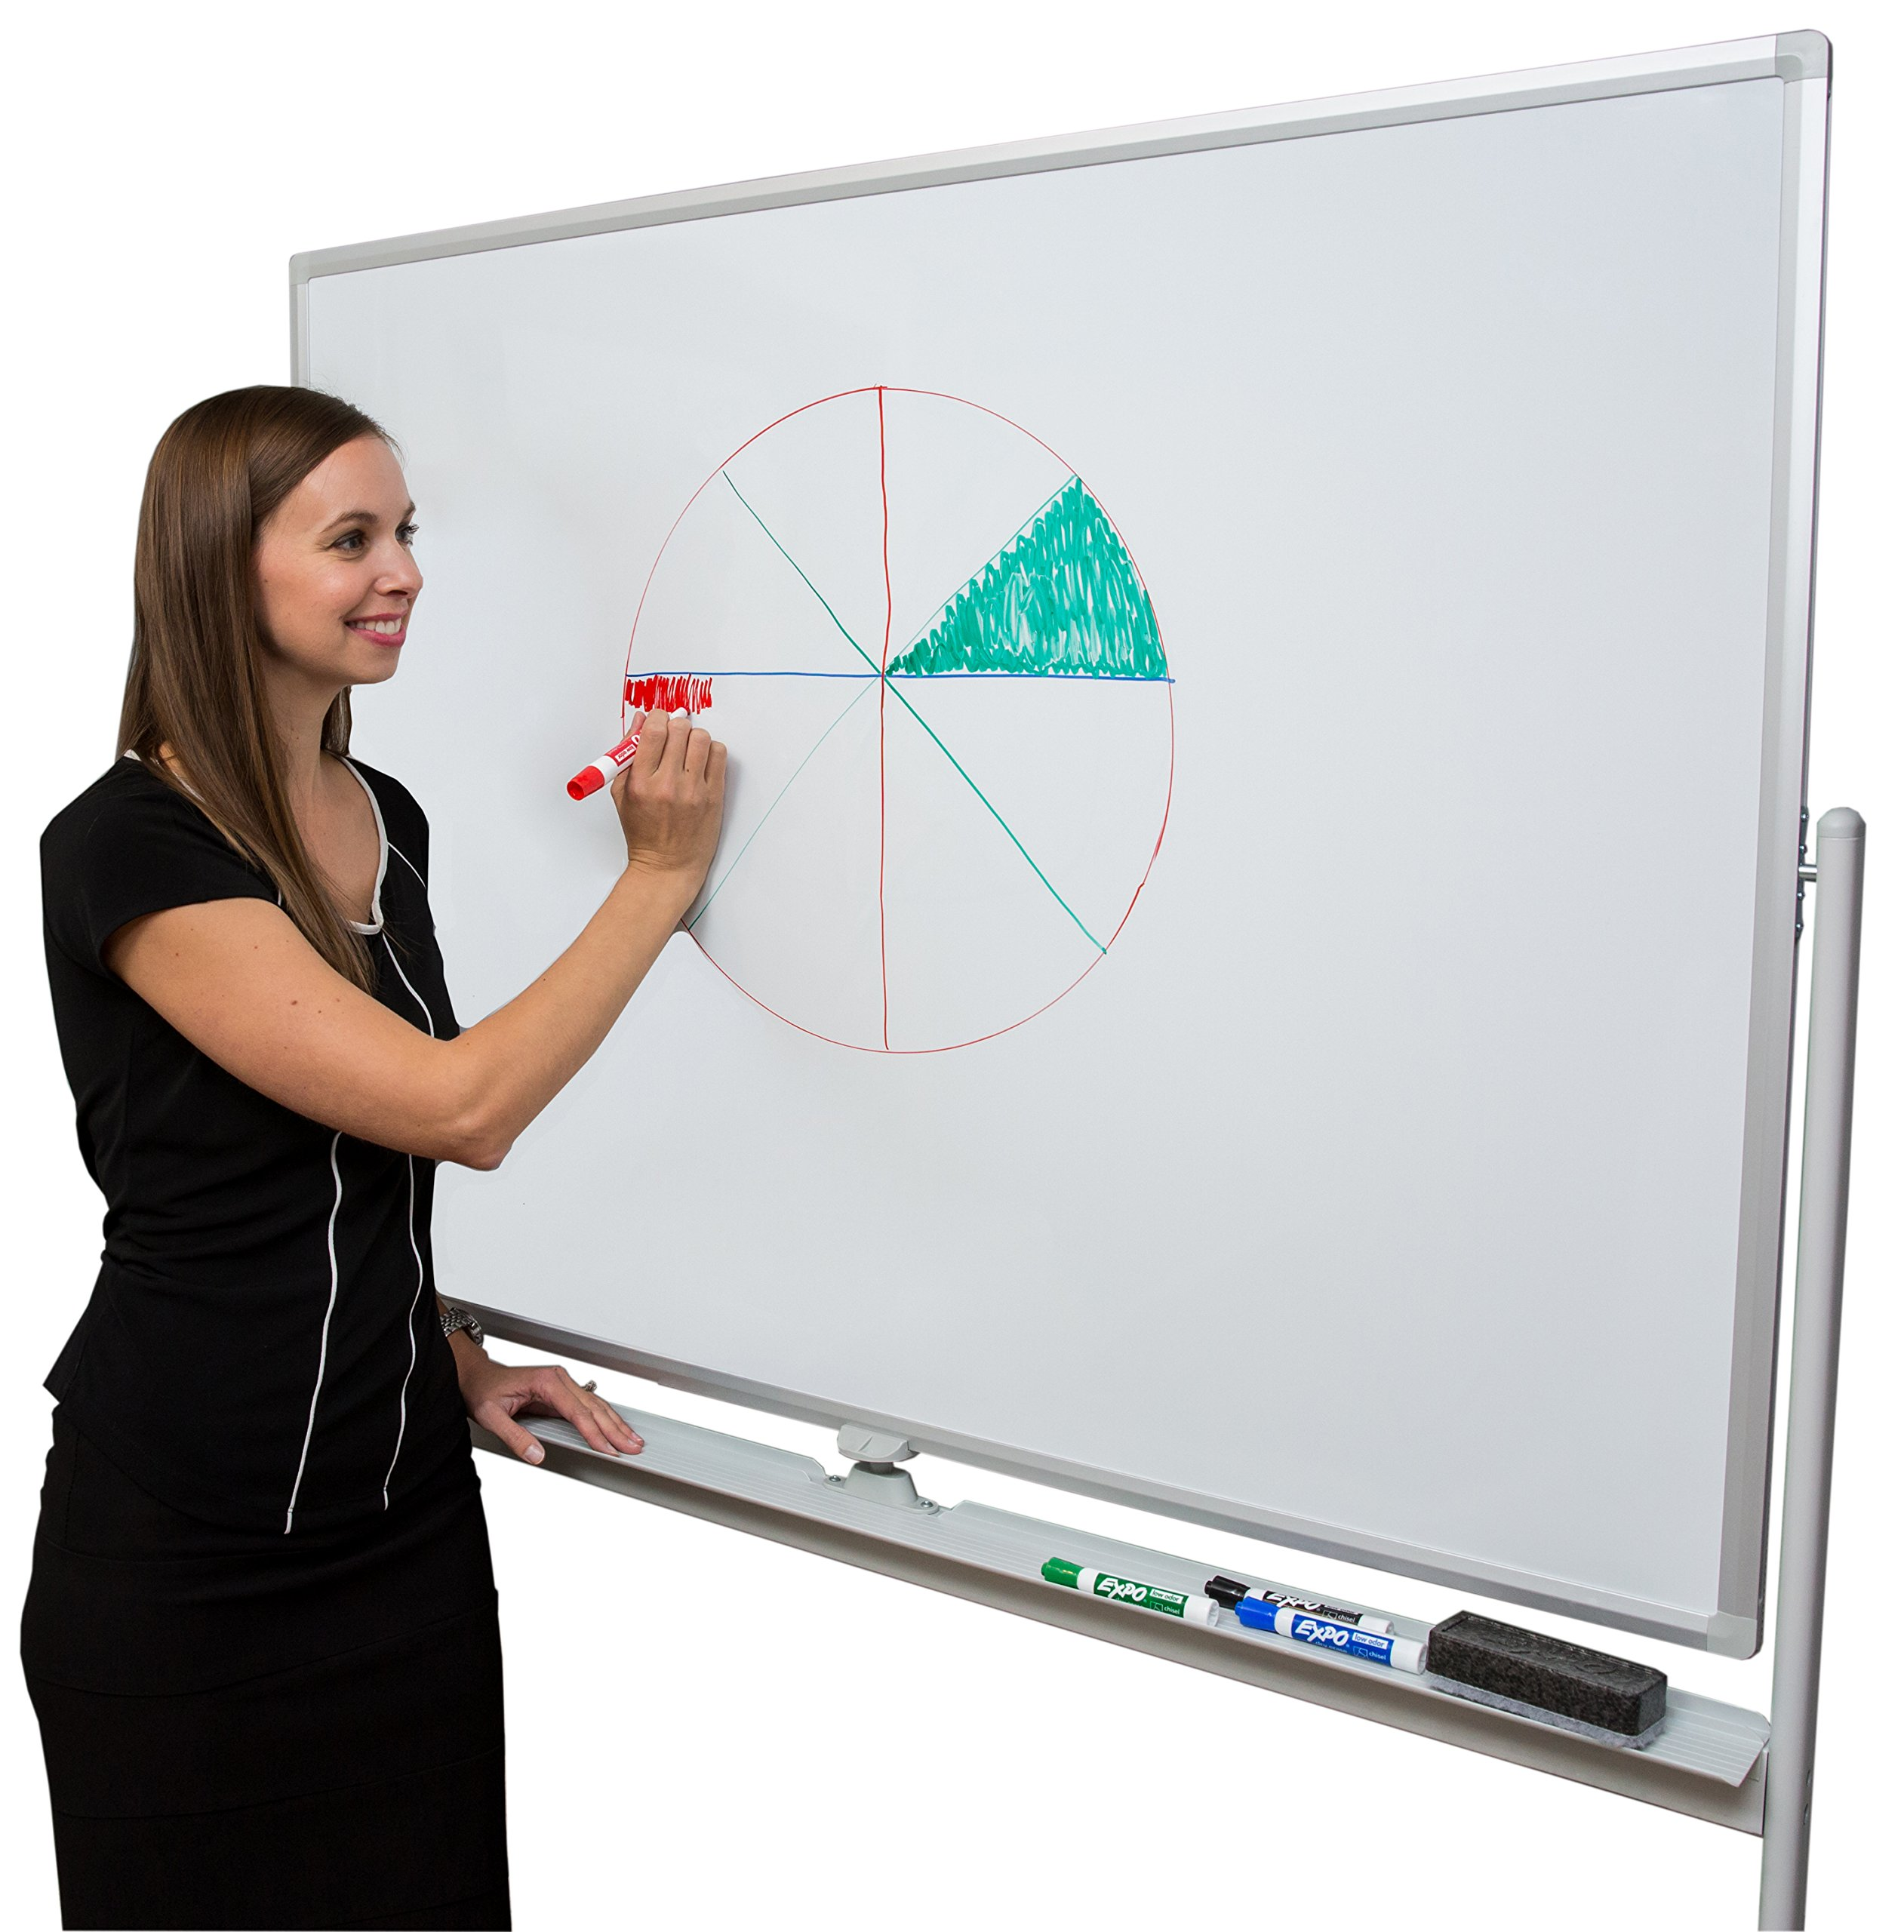 Induxpert Giant Mobile Dry Erase Magnetic Whiteboard - Double-Sided - Flip Sides Quickly With Lock/Unlock Feature - Sturdy Frame - Easy to Clean and Assemble - 47 X 36